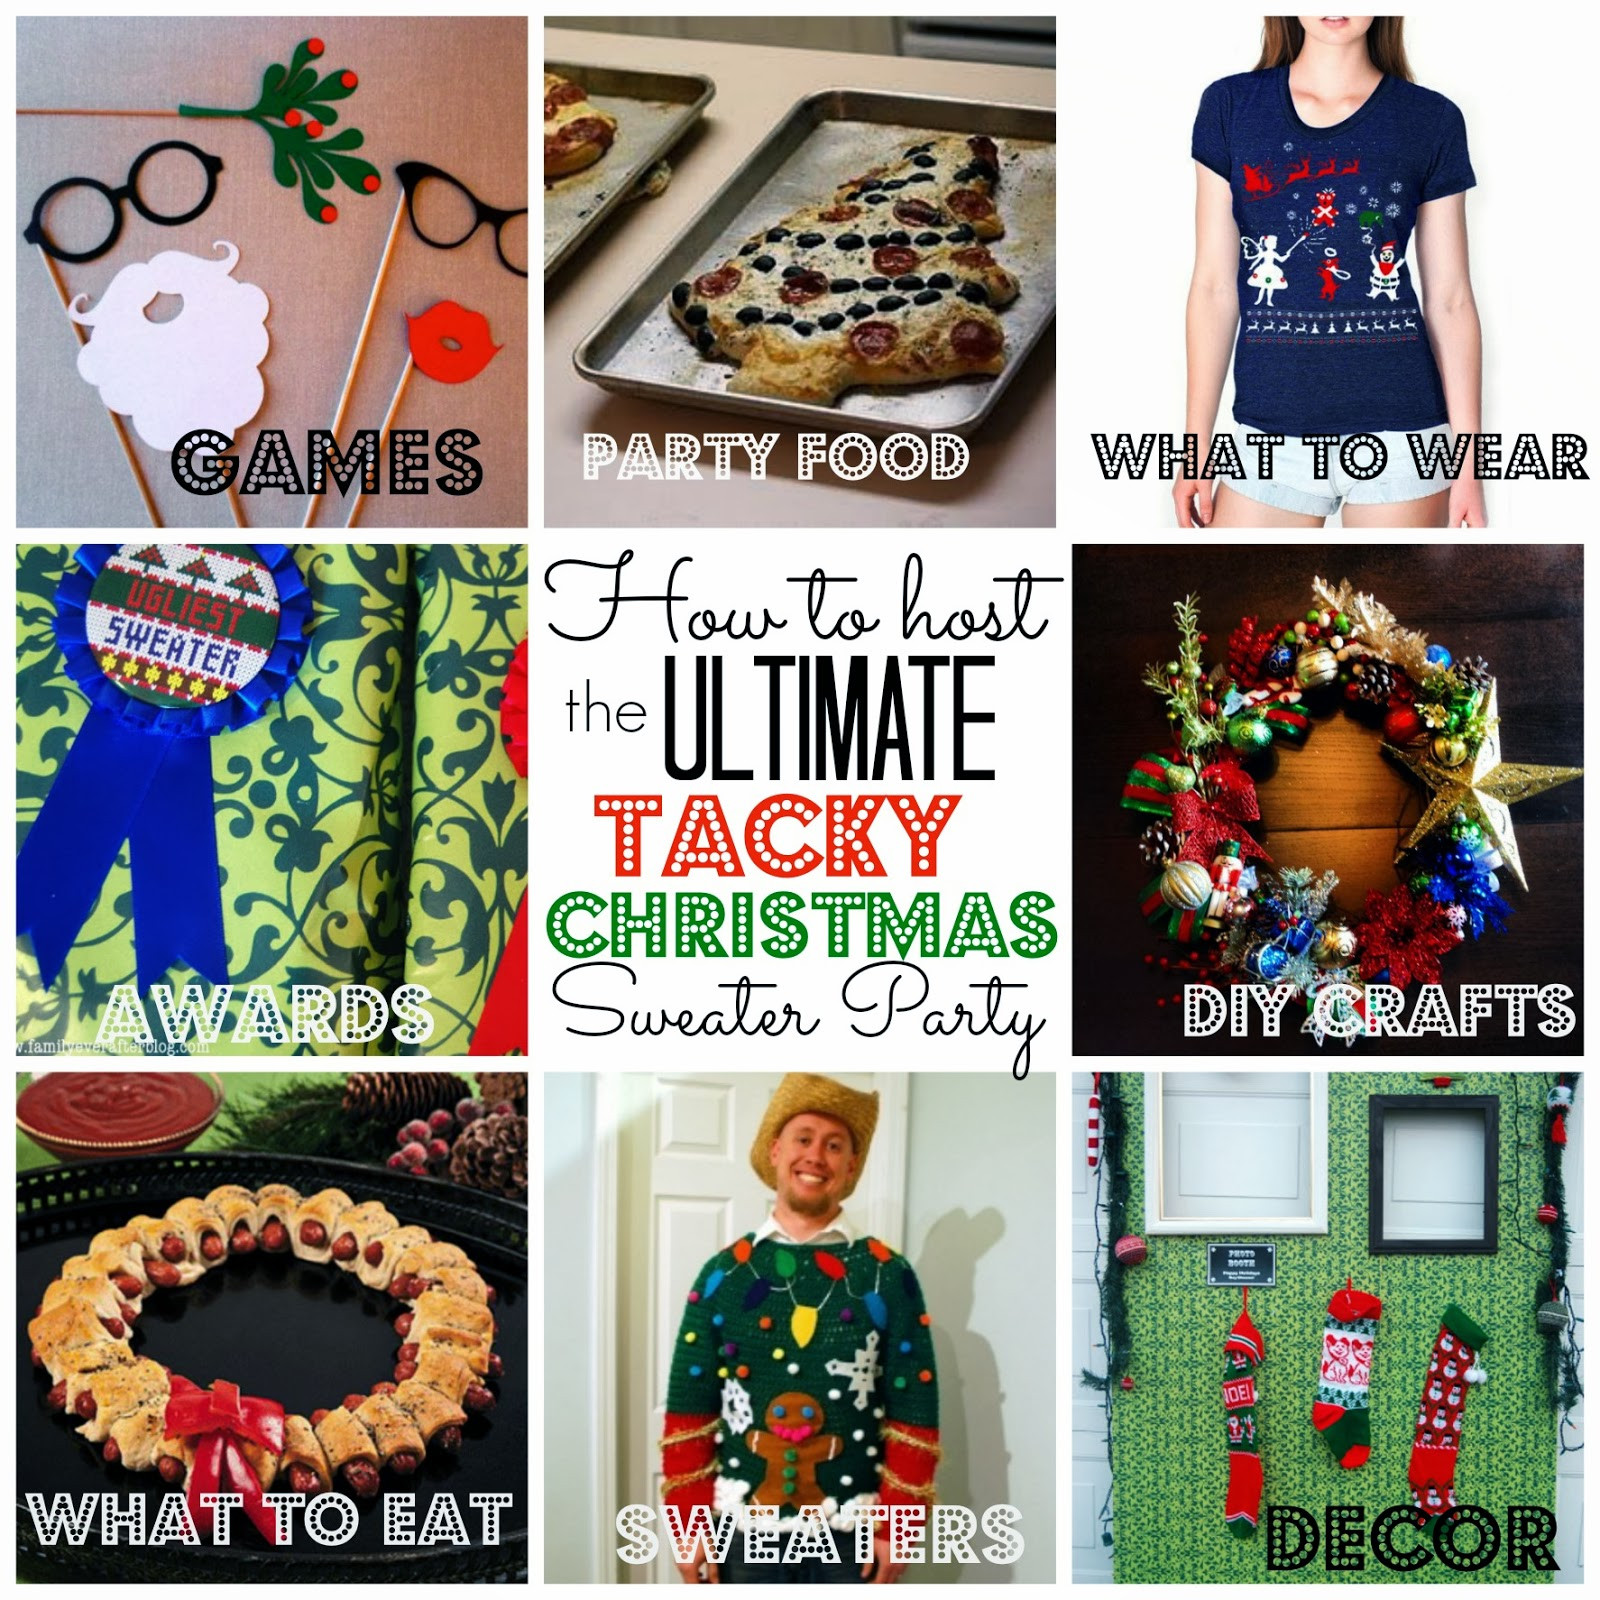 Tacky Christmas Party Ideas  Crafty Texas Girls Party Planning Tacky Christmas Sweater